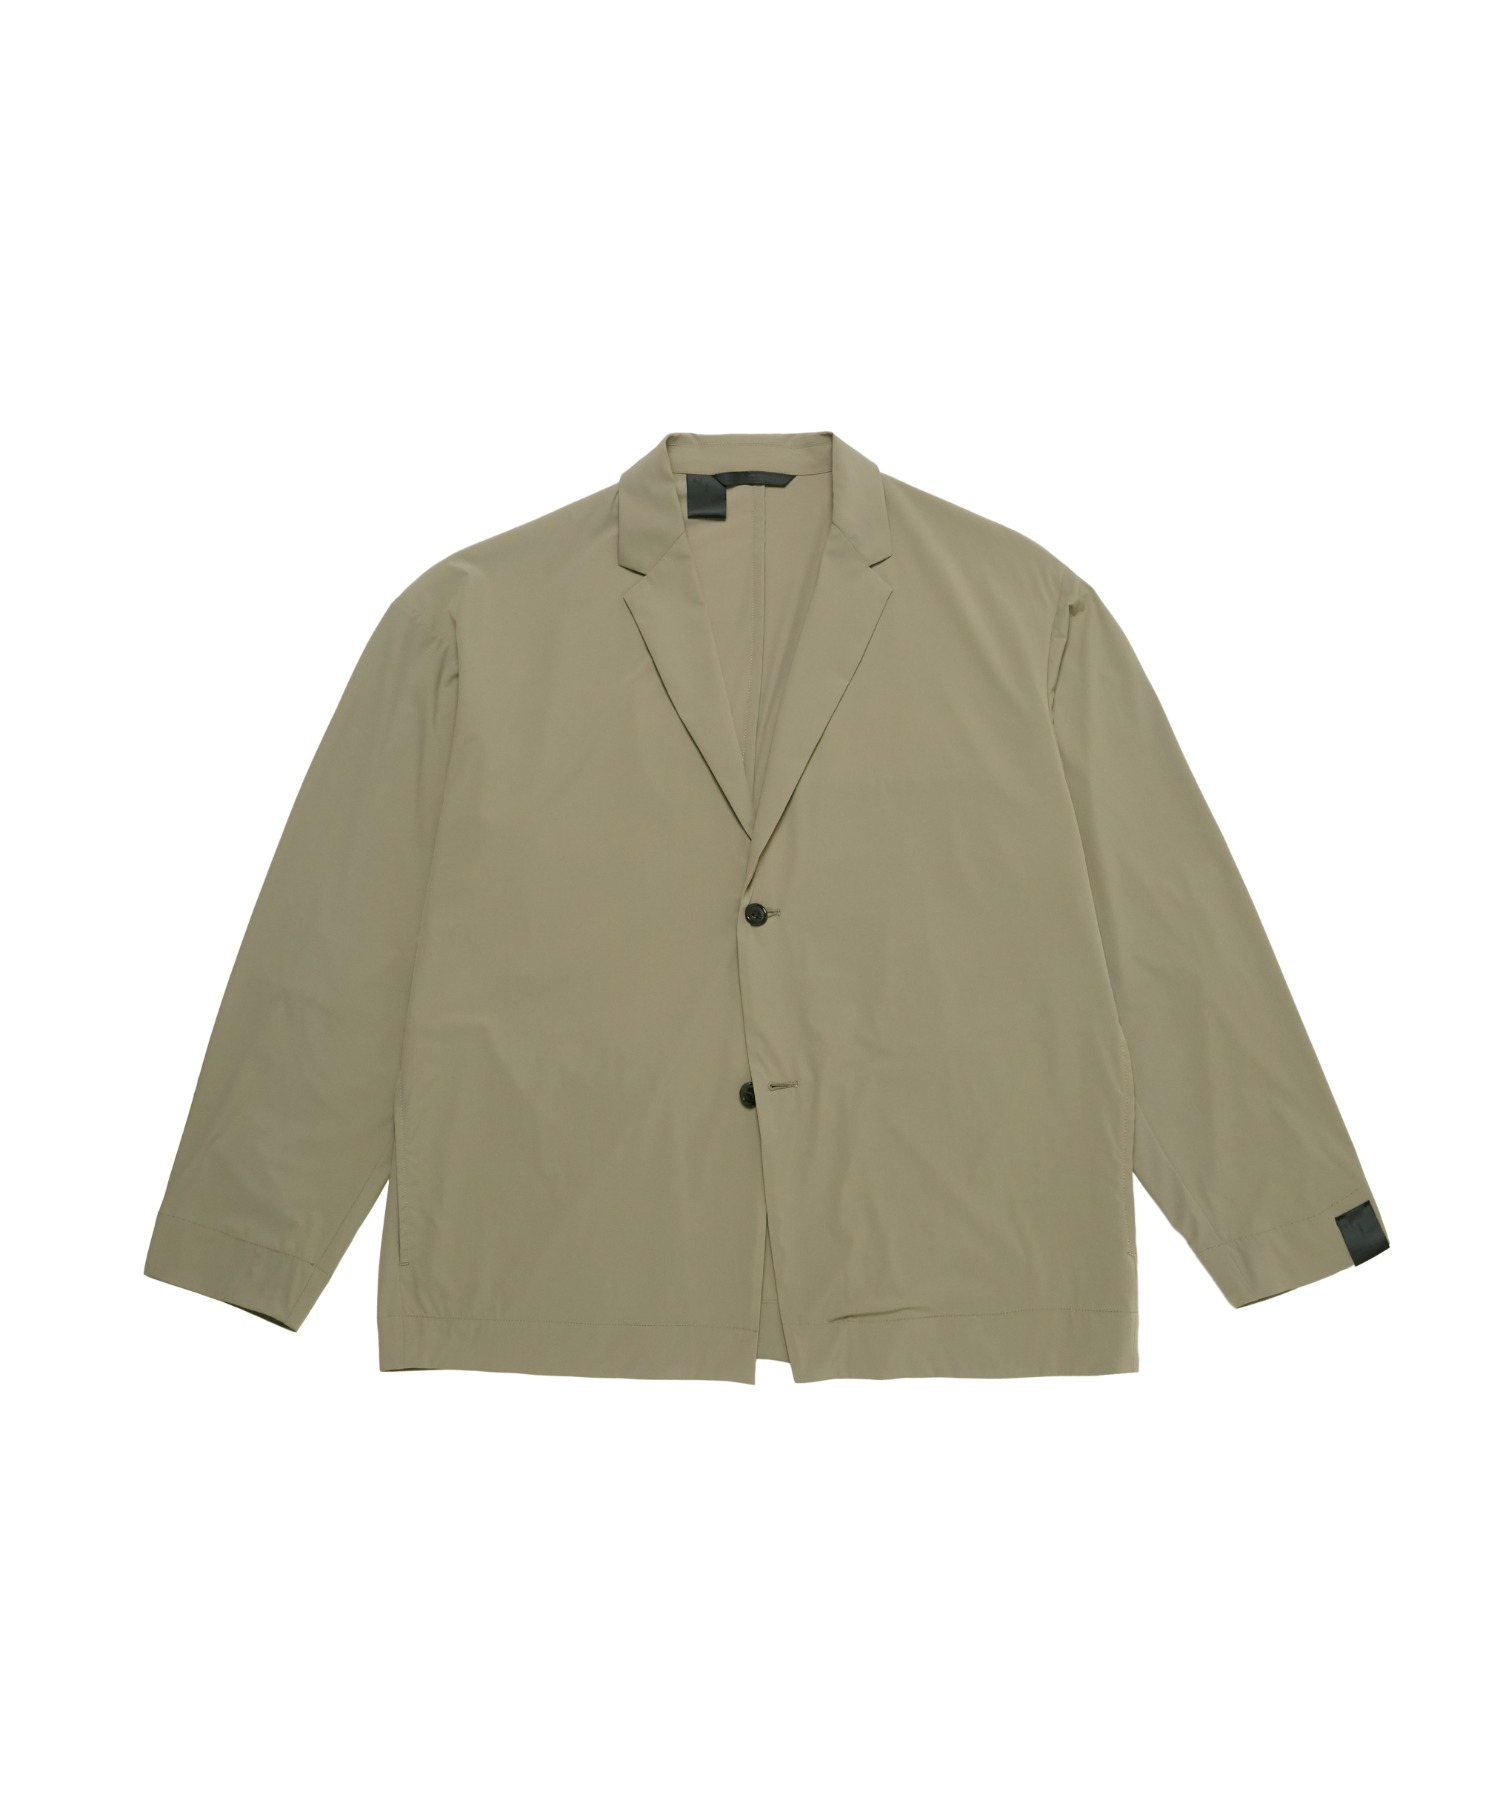 SPRING2021 TAILORED JACKET